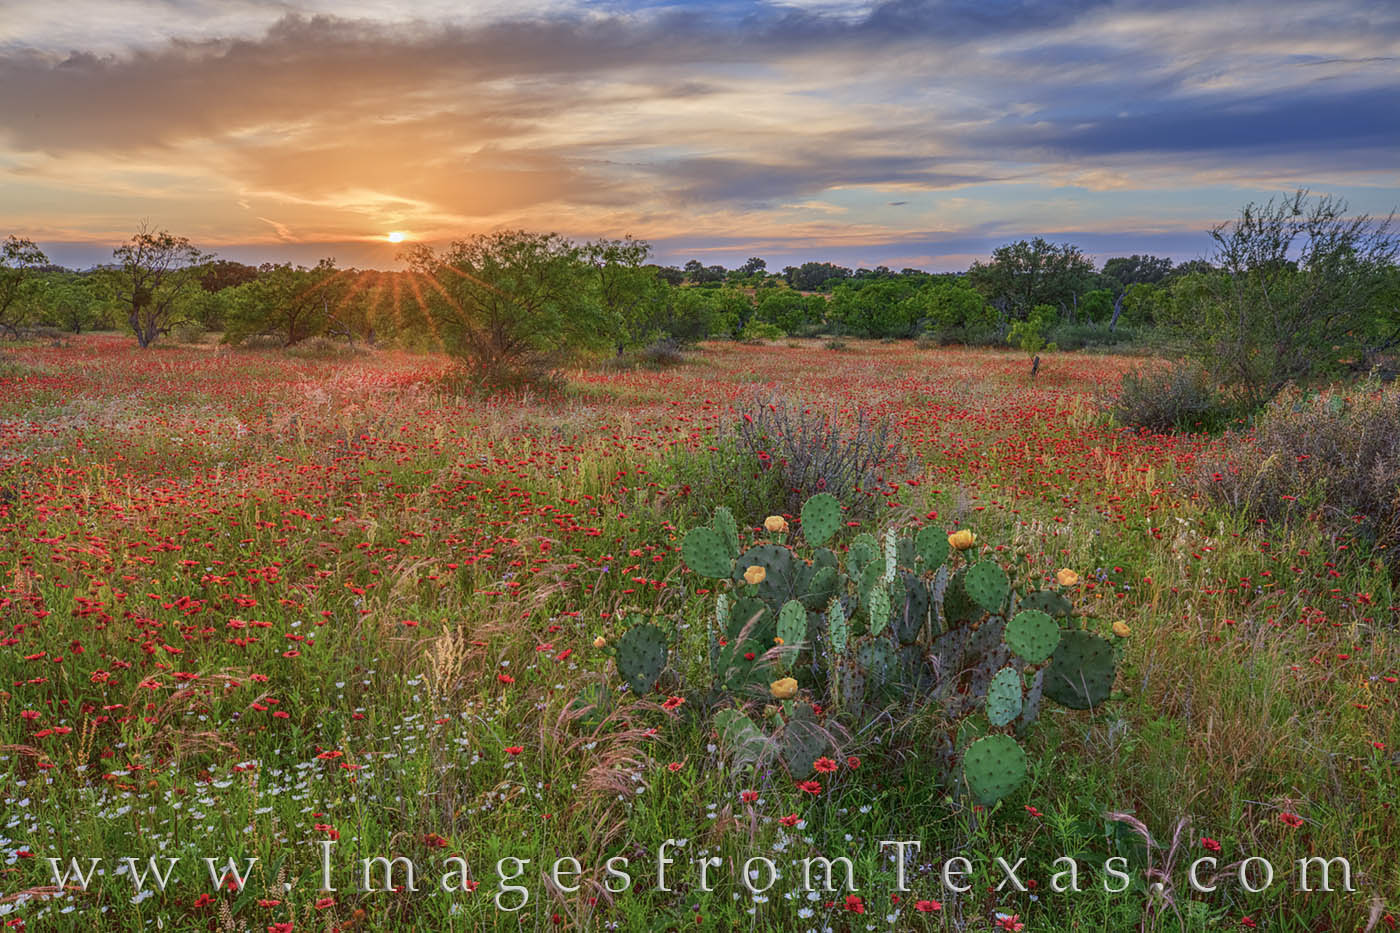 wildflowers, texas hill country, prickly pear, indian blankets, sunset, sunburst, beauty